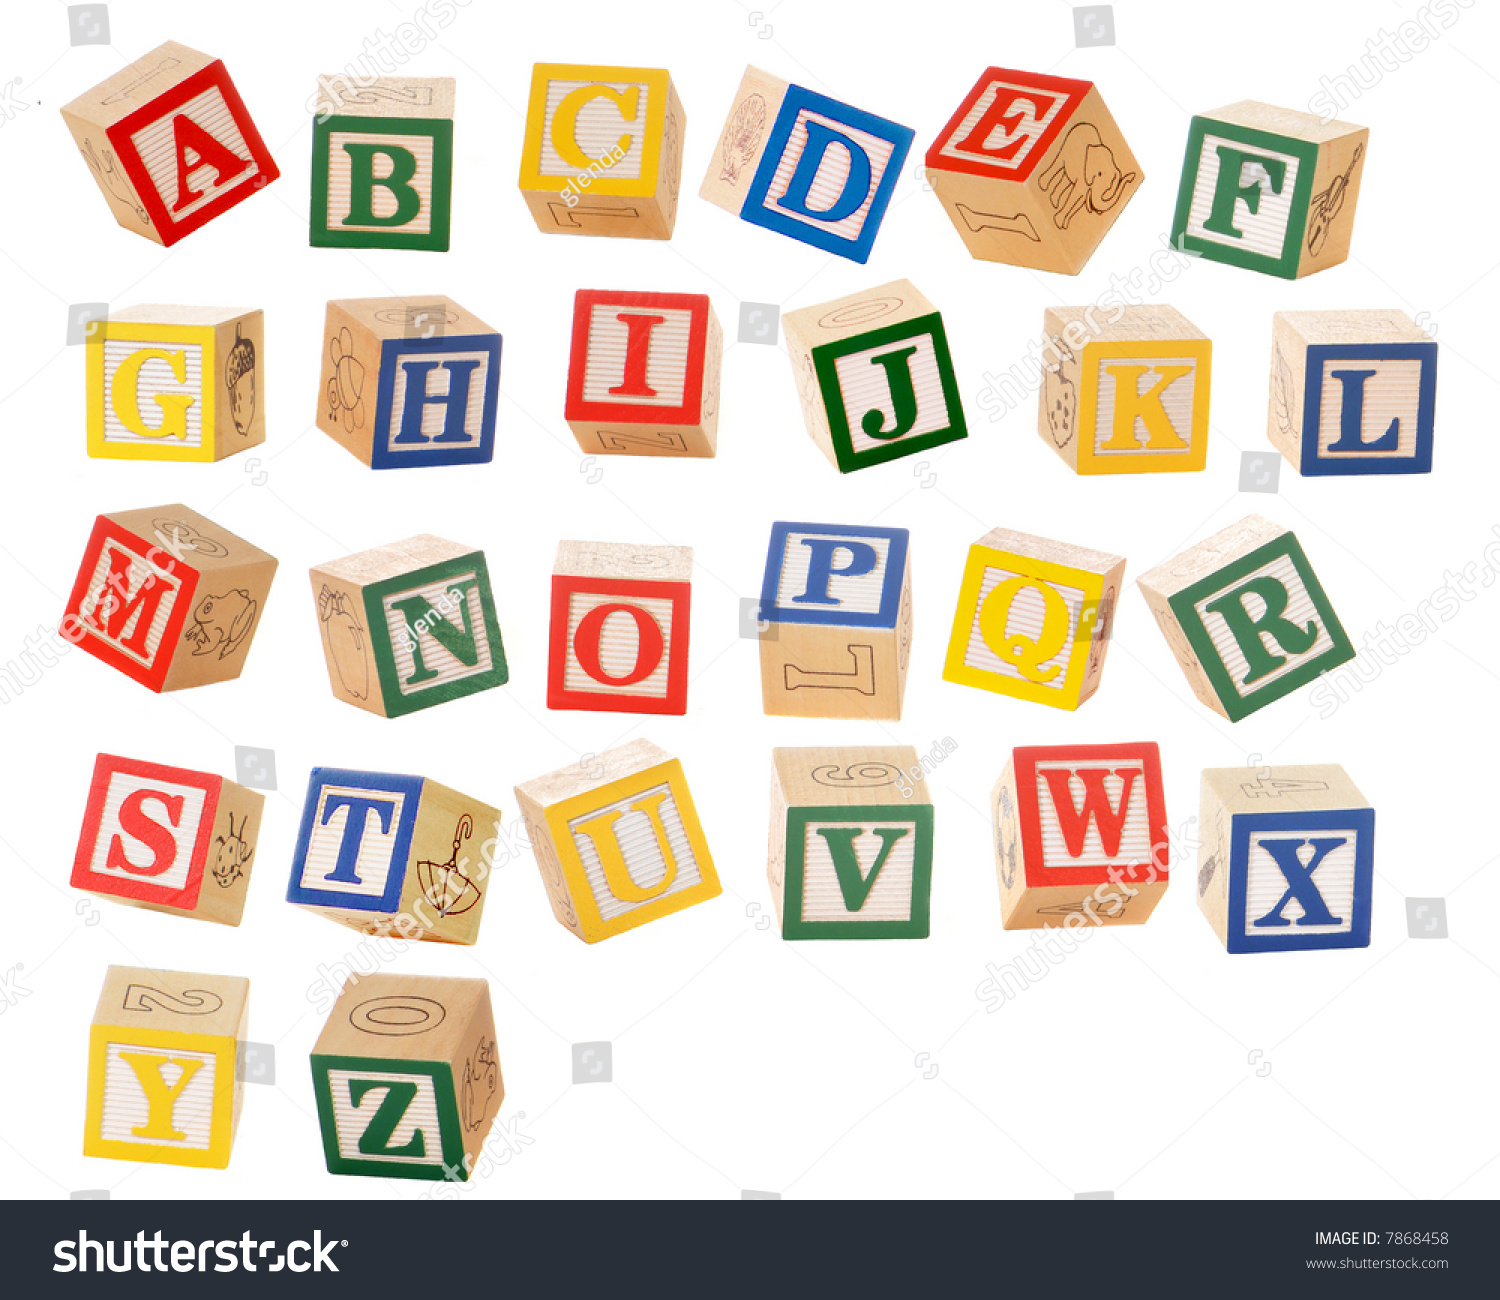 separated alphabet blocks of all the letters in various orientations as if they could be